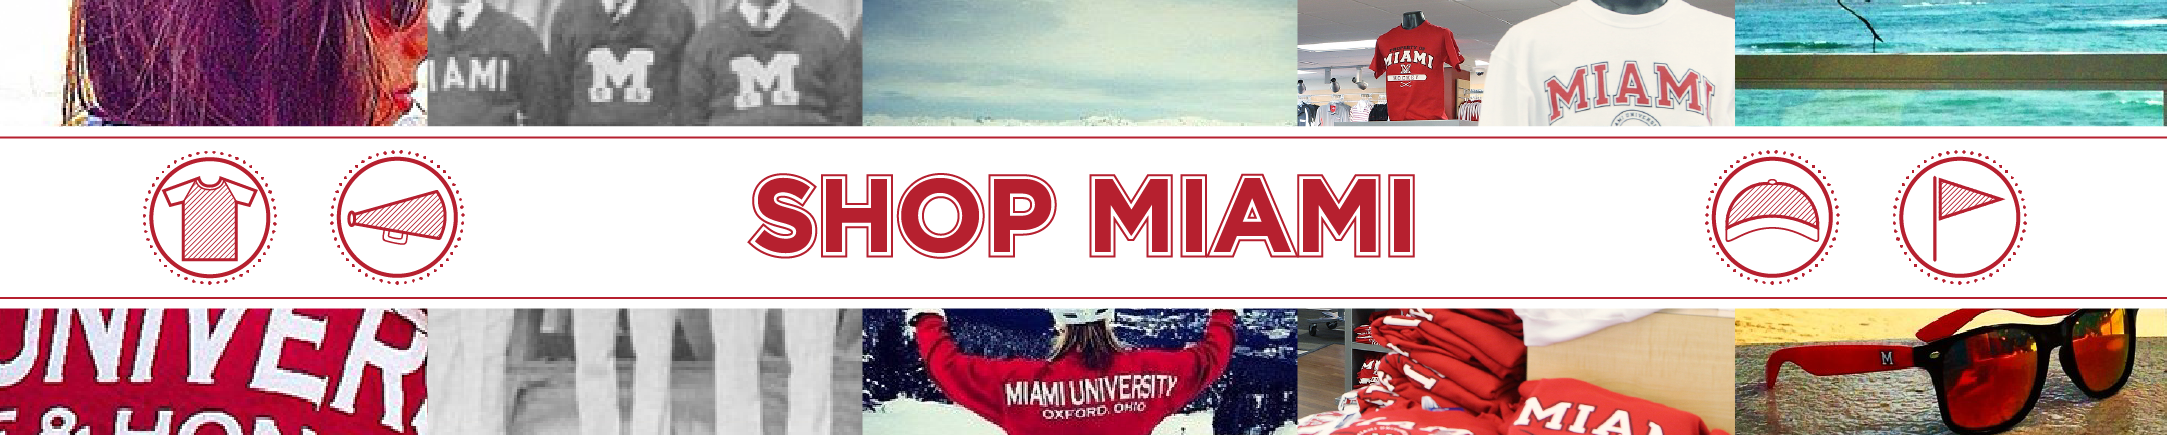 Shop Miami. Photos of a student wearing Love and Honor shirt, old photo of men in Miami sweaters, a student on a ski slope wearing a Miami Unviersity Sweatshirt, Miami shirts in the bookstore, and Miami sunglasses on a beach